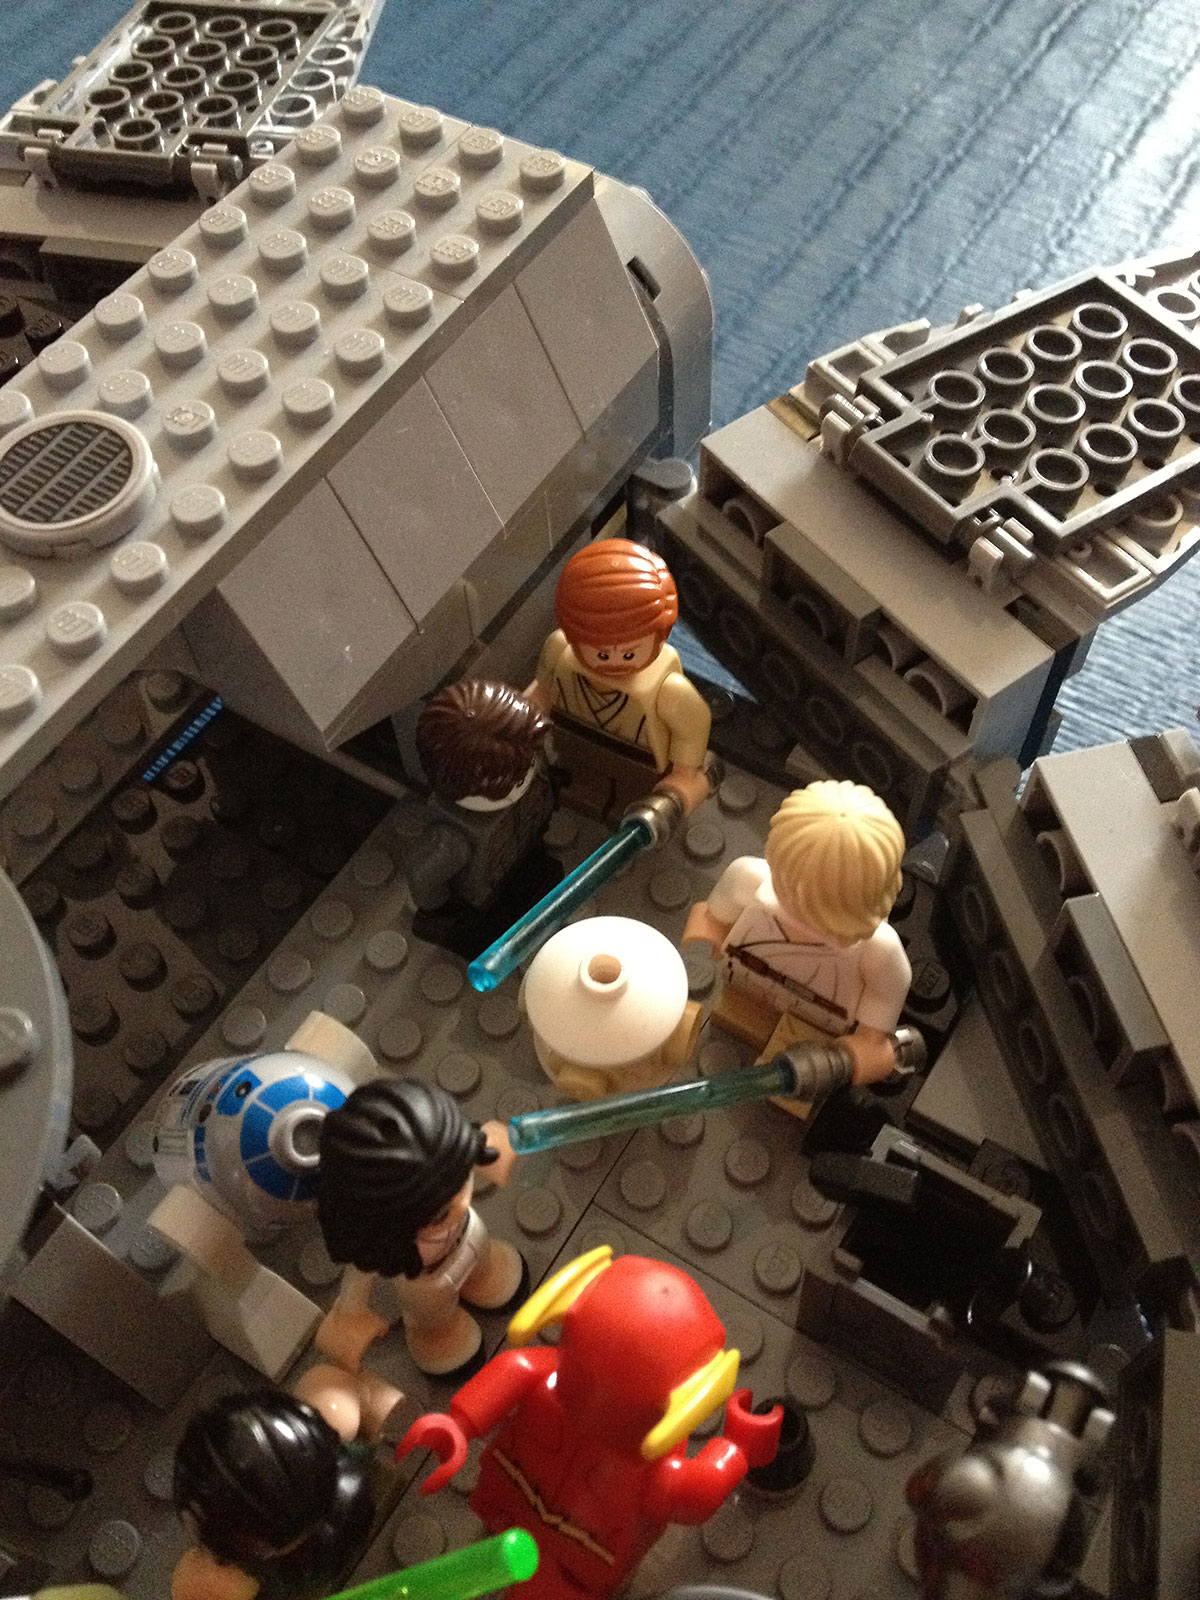 Flash helps Obi-Van with levelling up Luke's abilities.